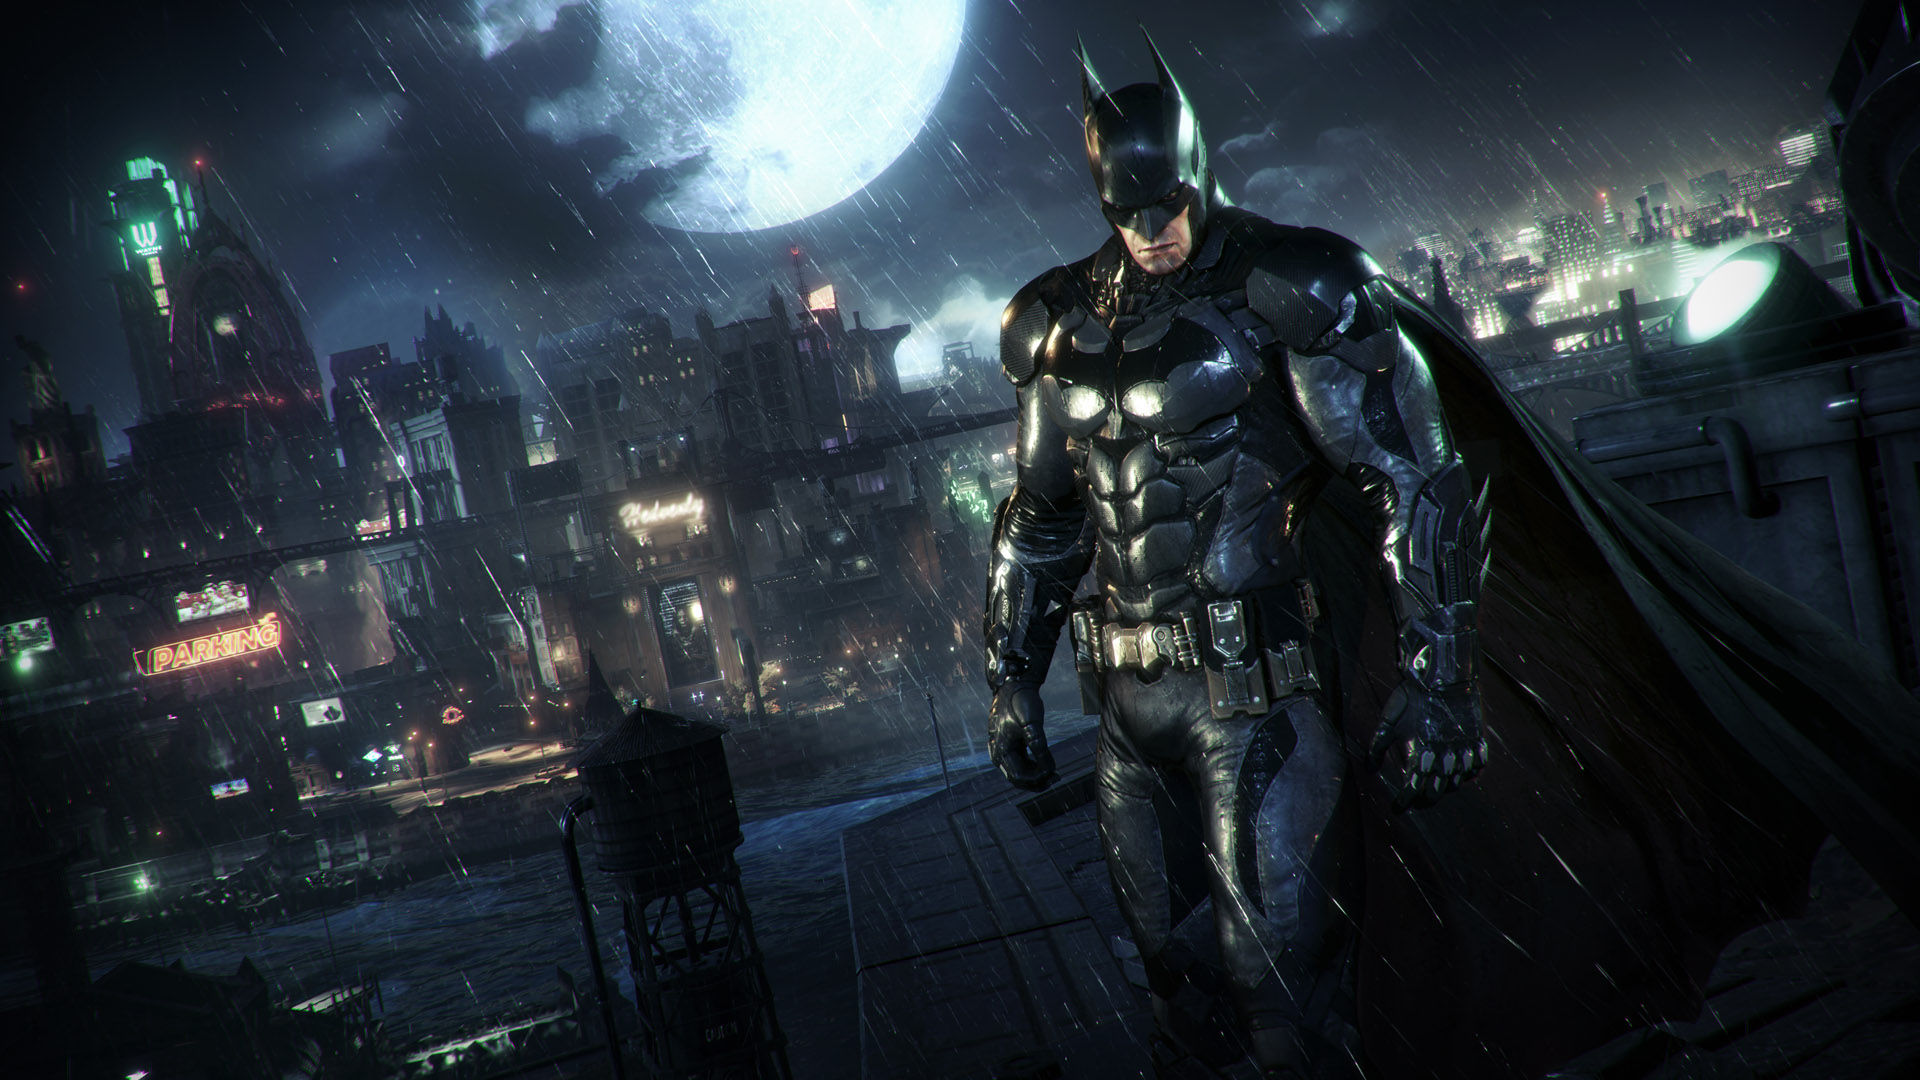 E3 2014: Batman: Arkham Knight Preview: The Batmobile Rises